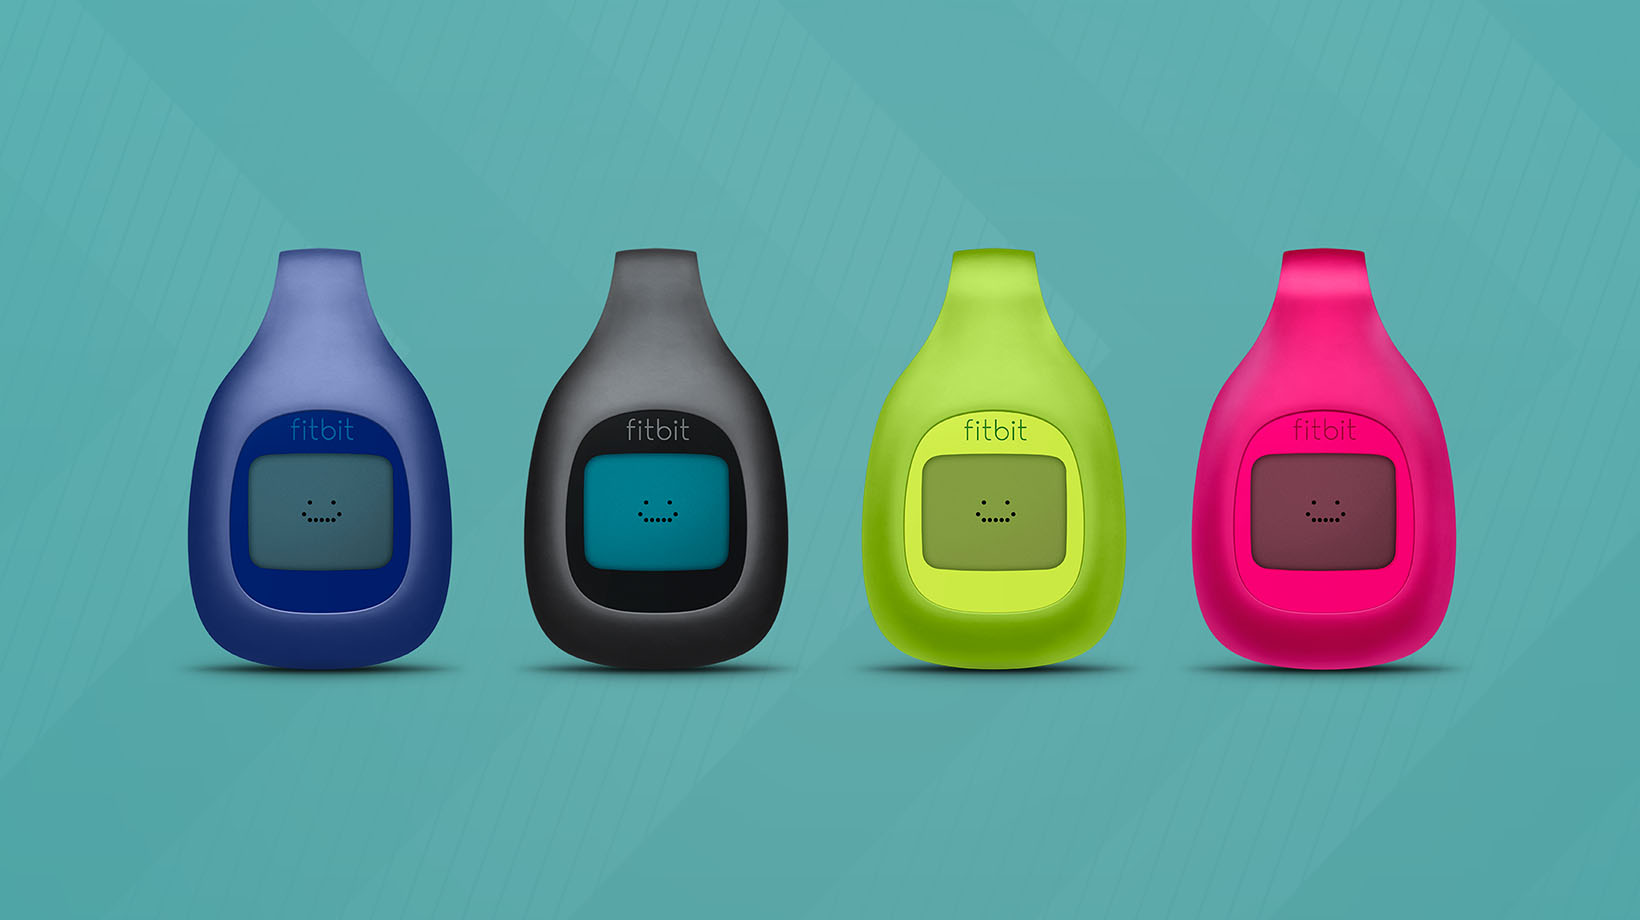 The zip is great as a kids fitbit